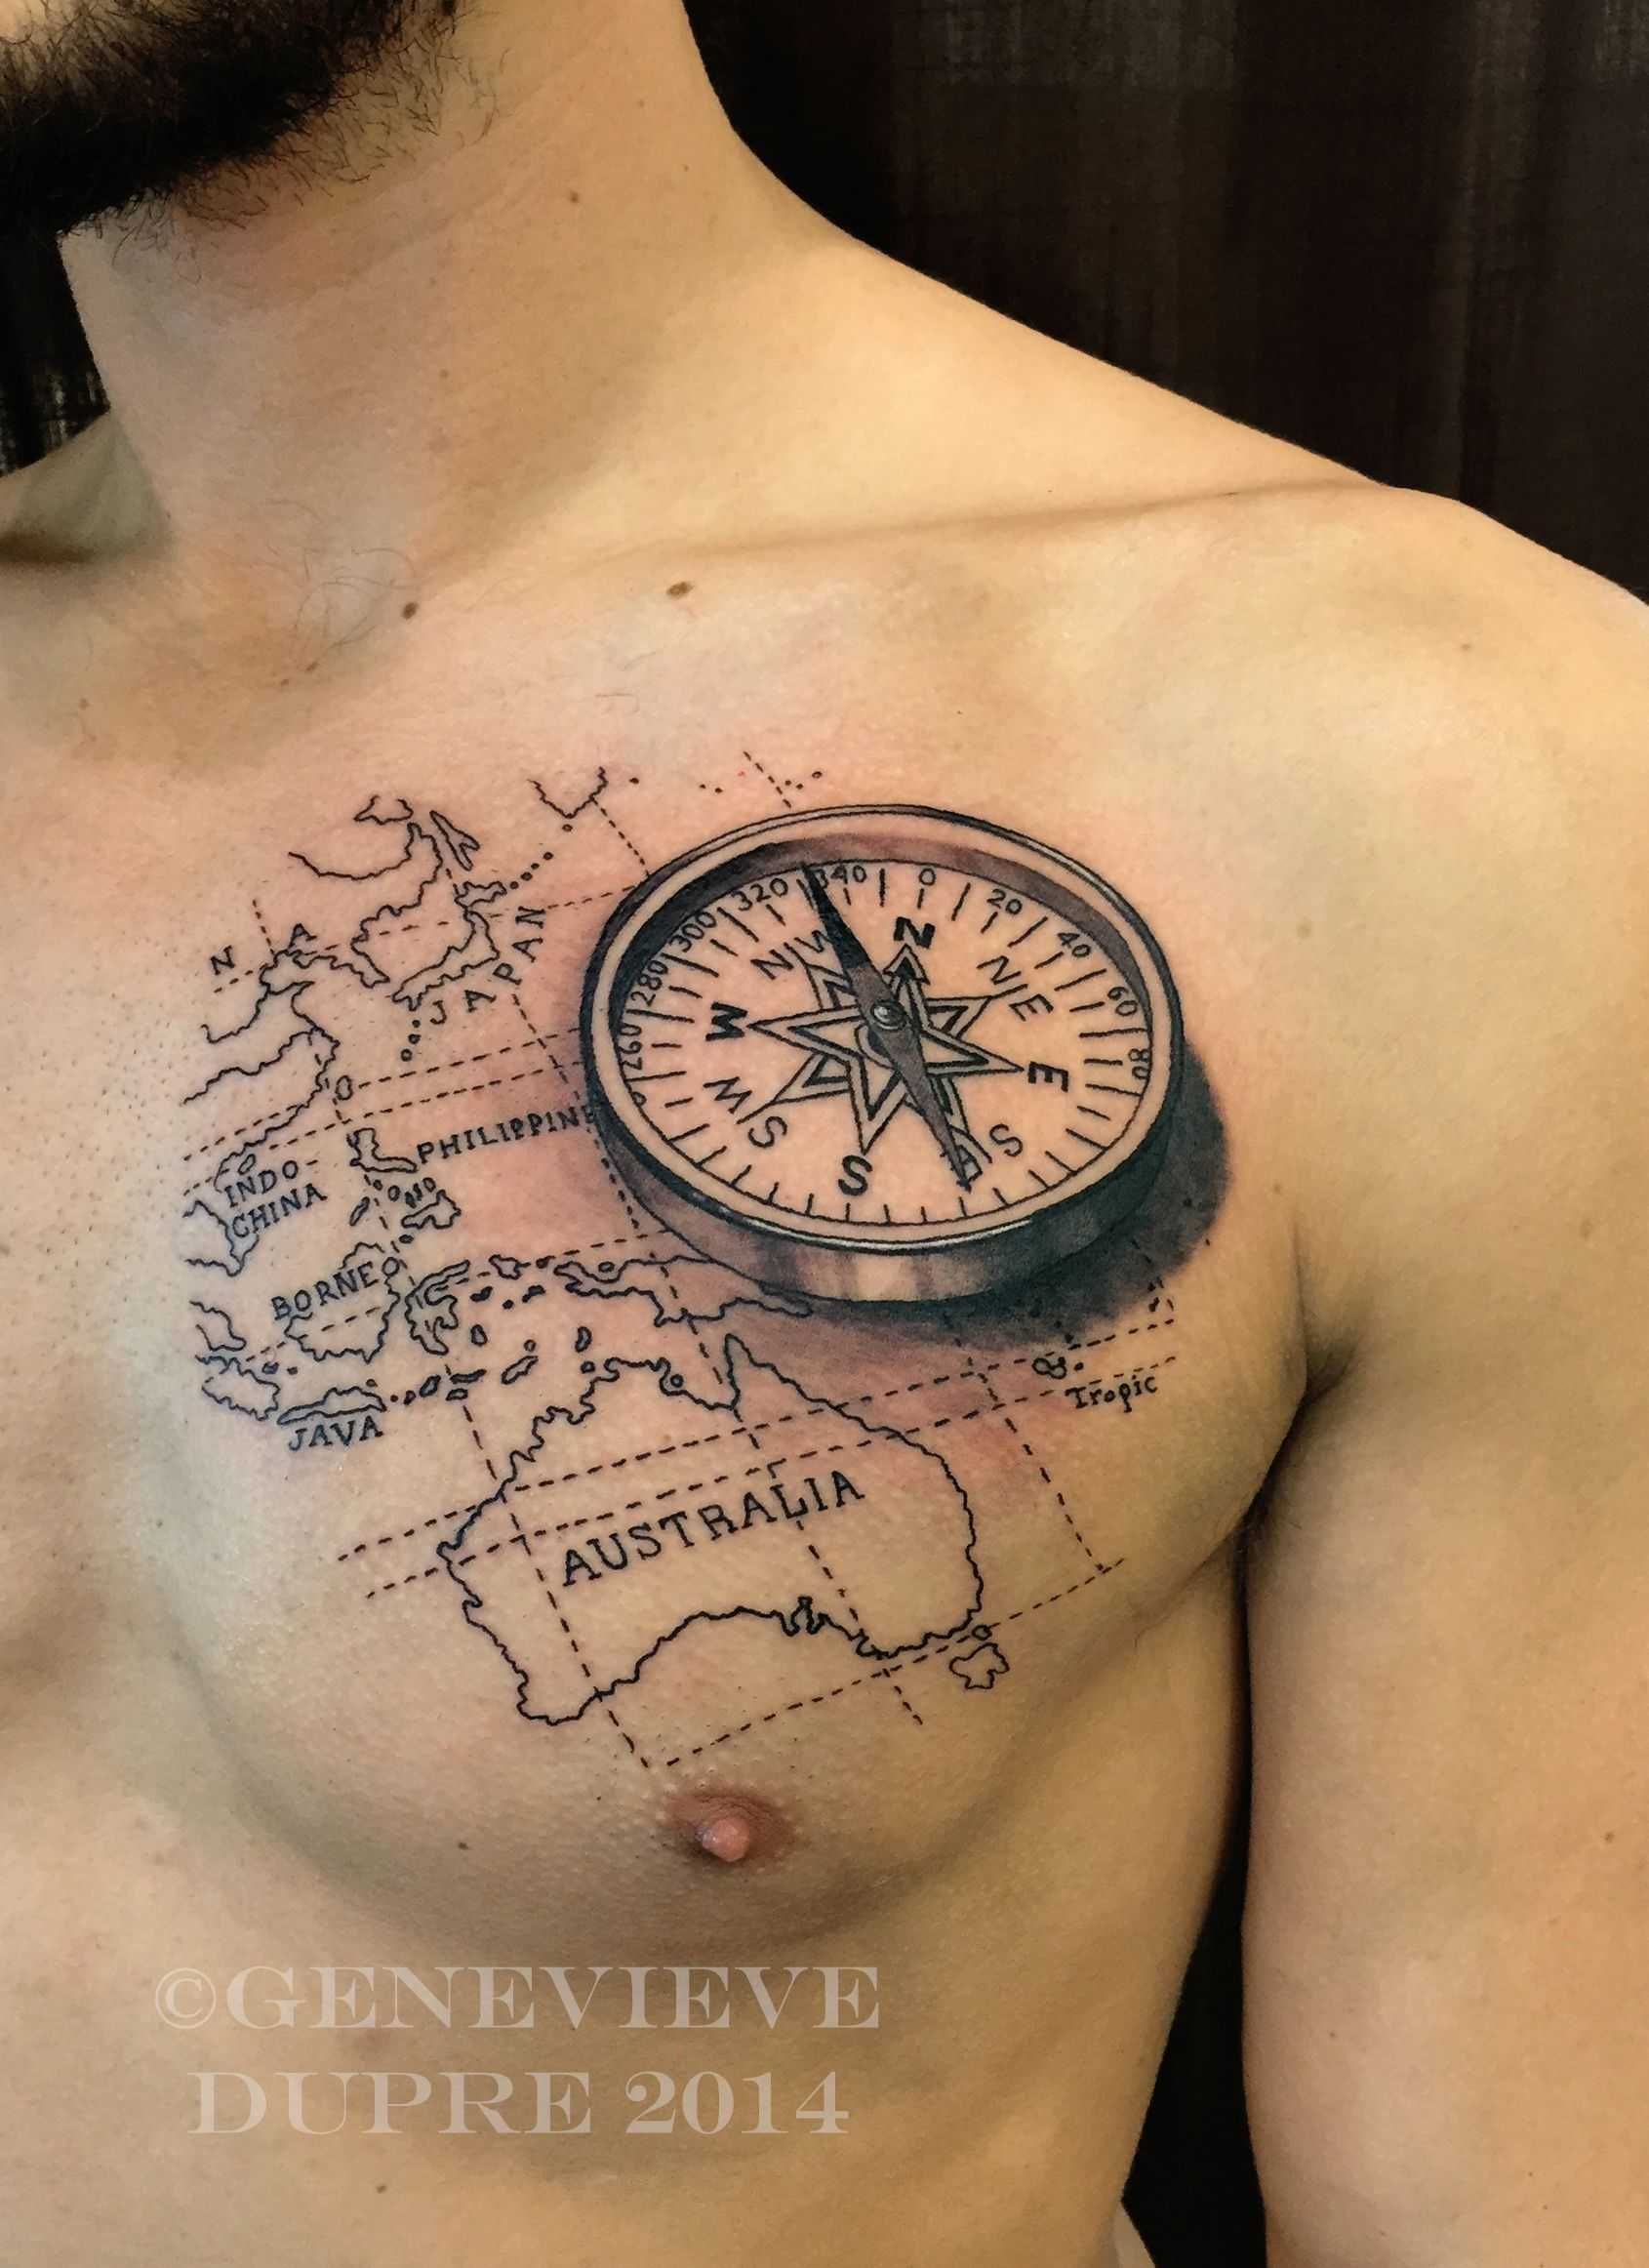 Inspiring Tattoo Ideas for Men with Creative Minds - Beautiful Inspiring Tattoo Ideas for Men with Creative Minds, Motivational Tattoo Tattoos